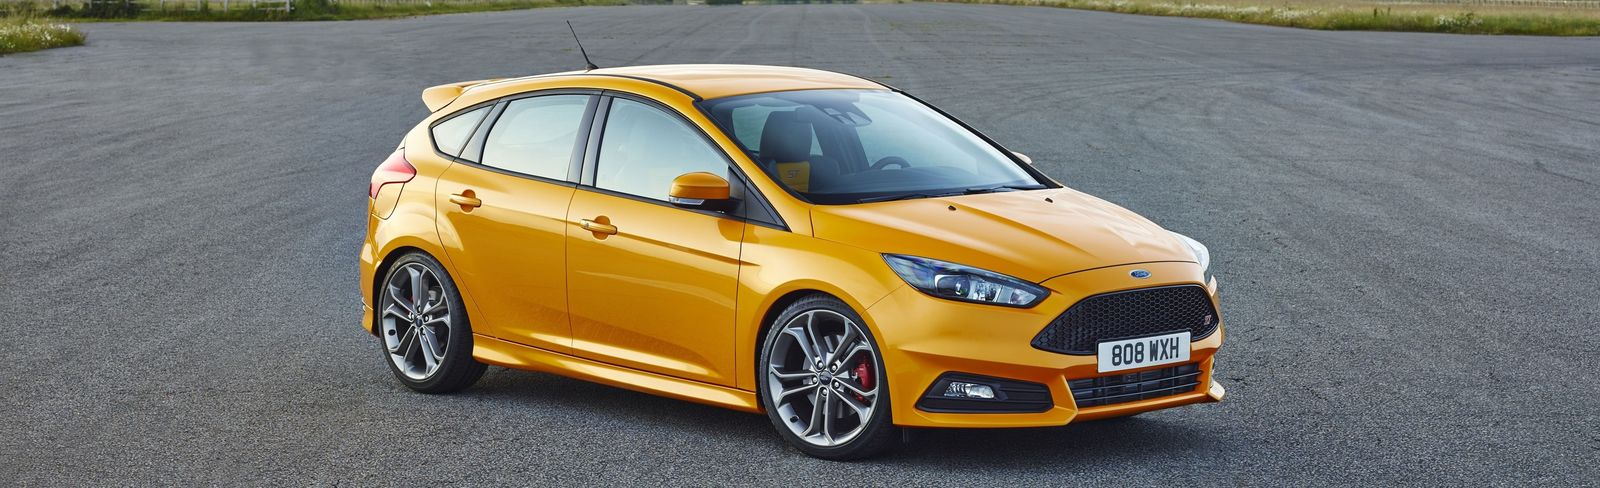 Ford Focus ST dimensions yellow front exterior & Ford Focus sizes and dimensions guide | carwow markmcfarlin.com